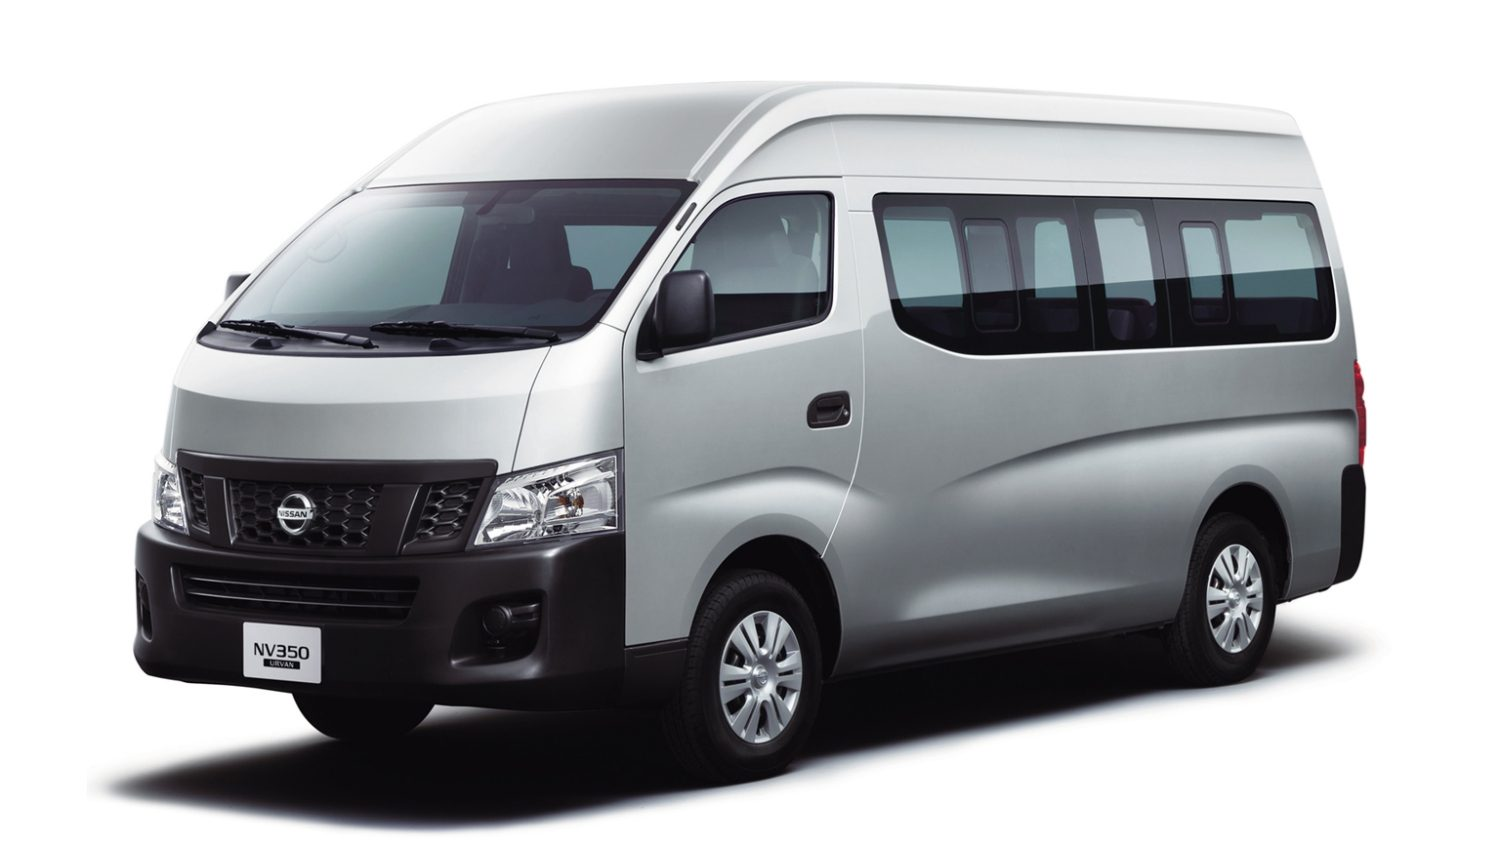 nissan urvan versions specifications nissan ksa. Black Bedroom Furniture Sets. Home Design Ideas